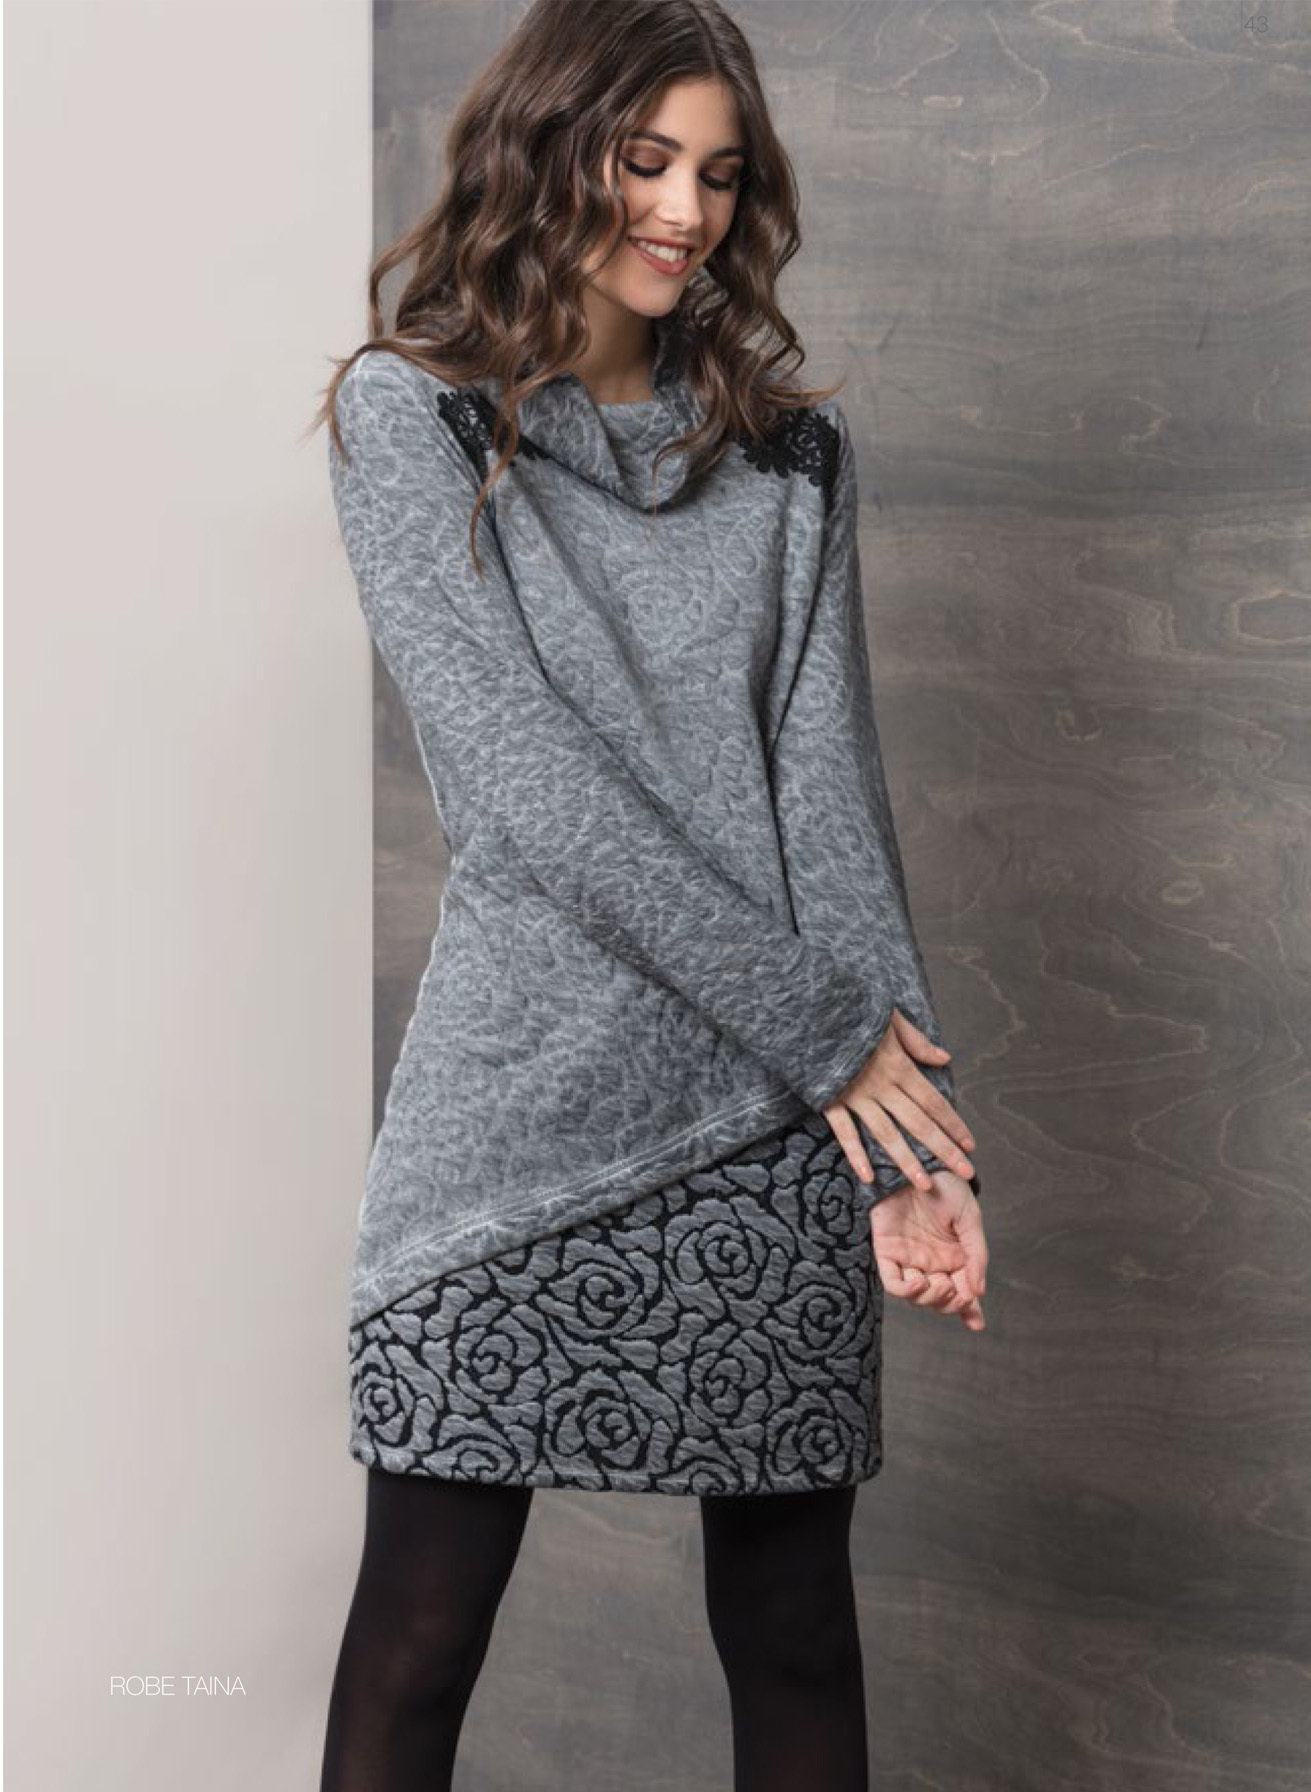 Maloka: Rose Imprinted Angled Hem Sweater Dress (2 Left!) MK_TAINA_N4